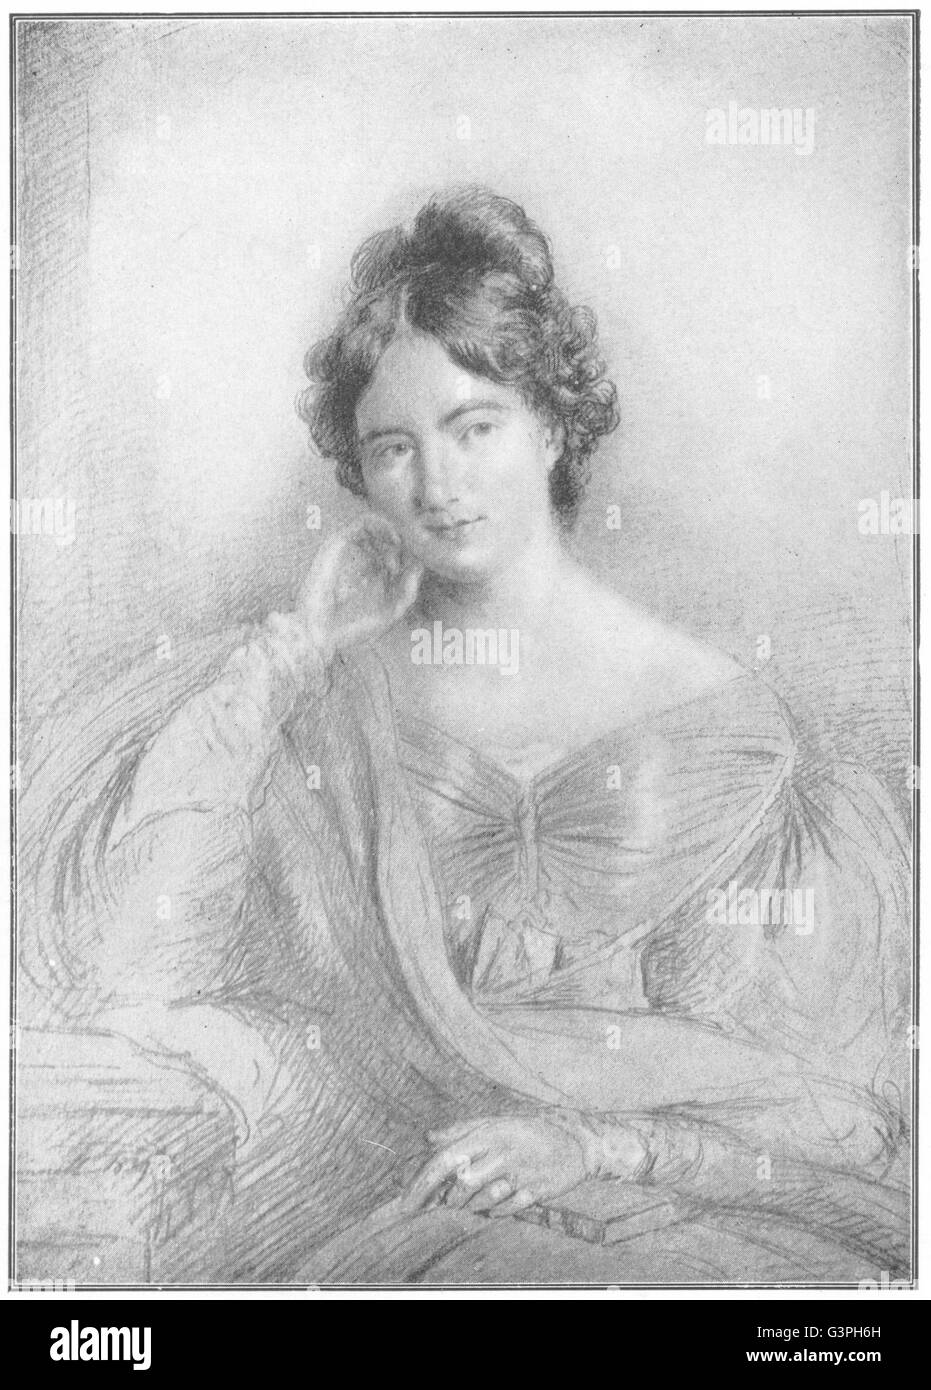 AUTHORS: Jane Austen, antique print 1907 - Stock Image